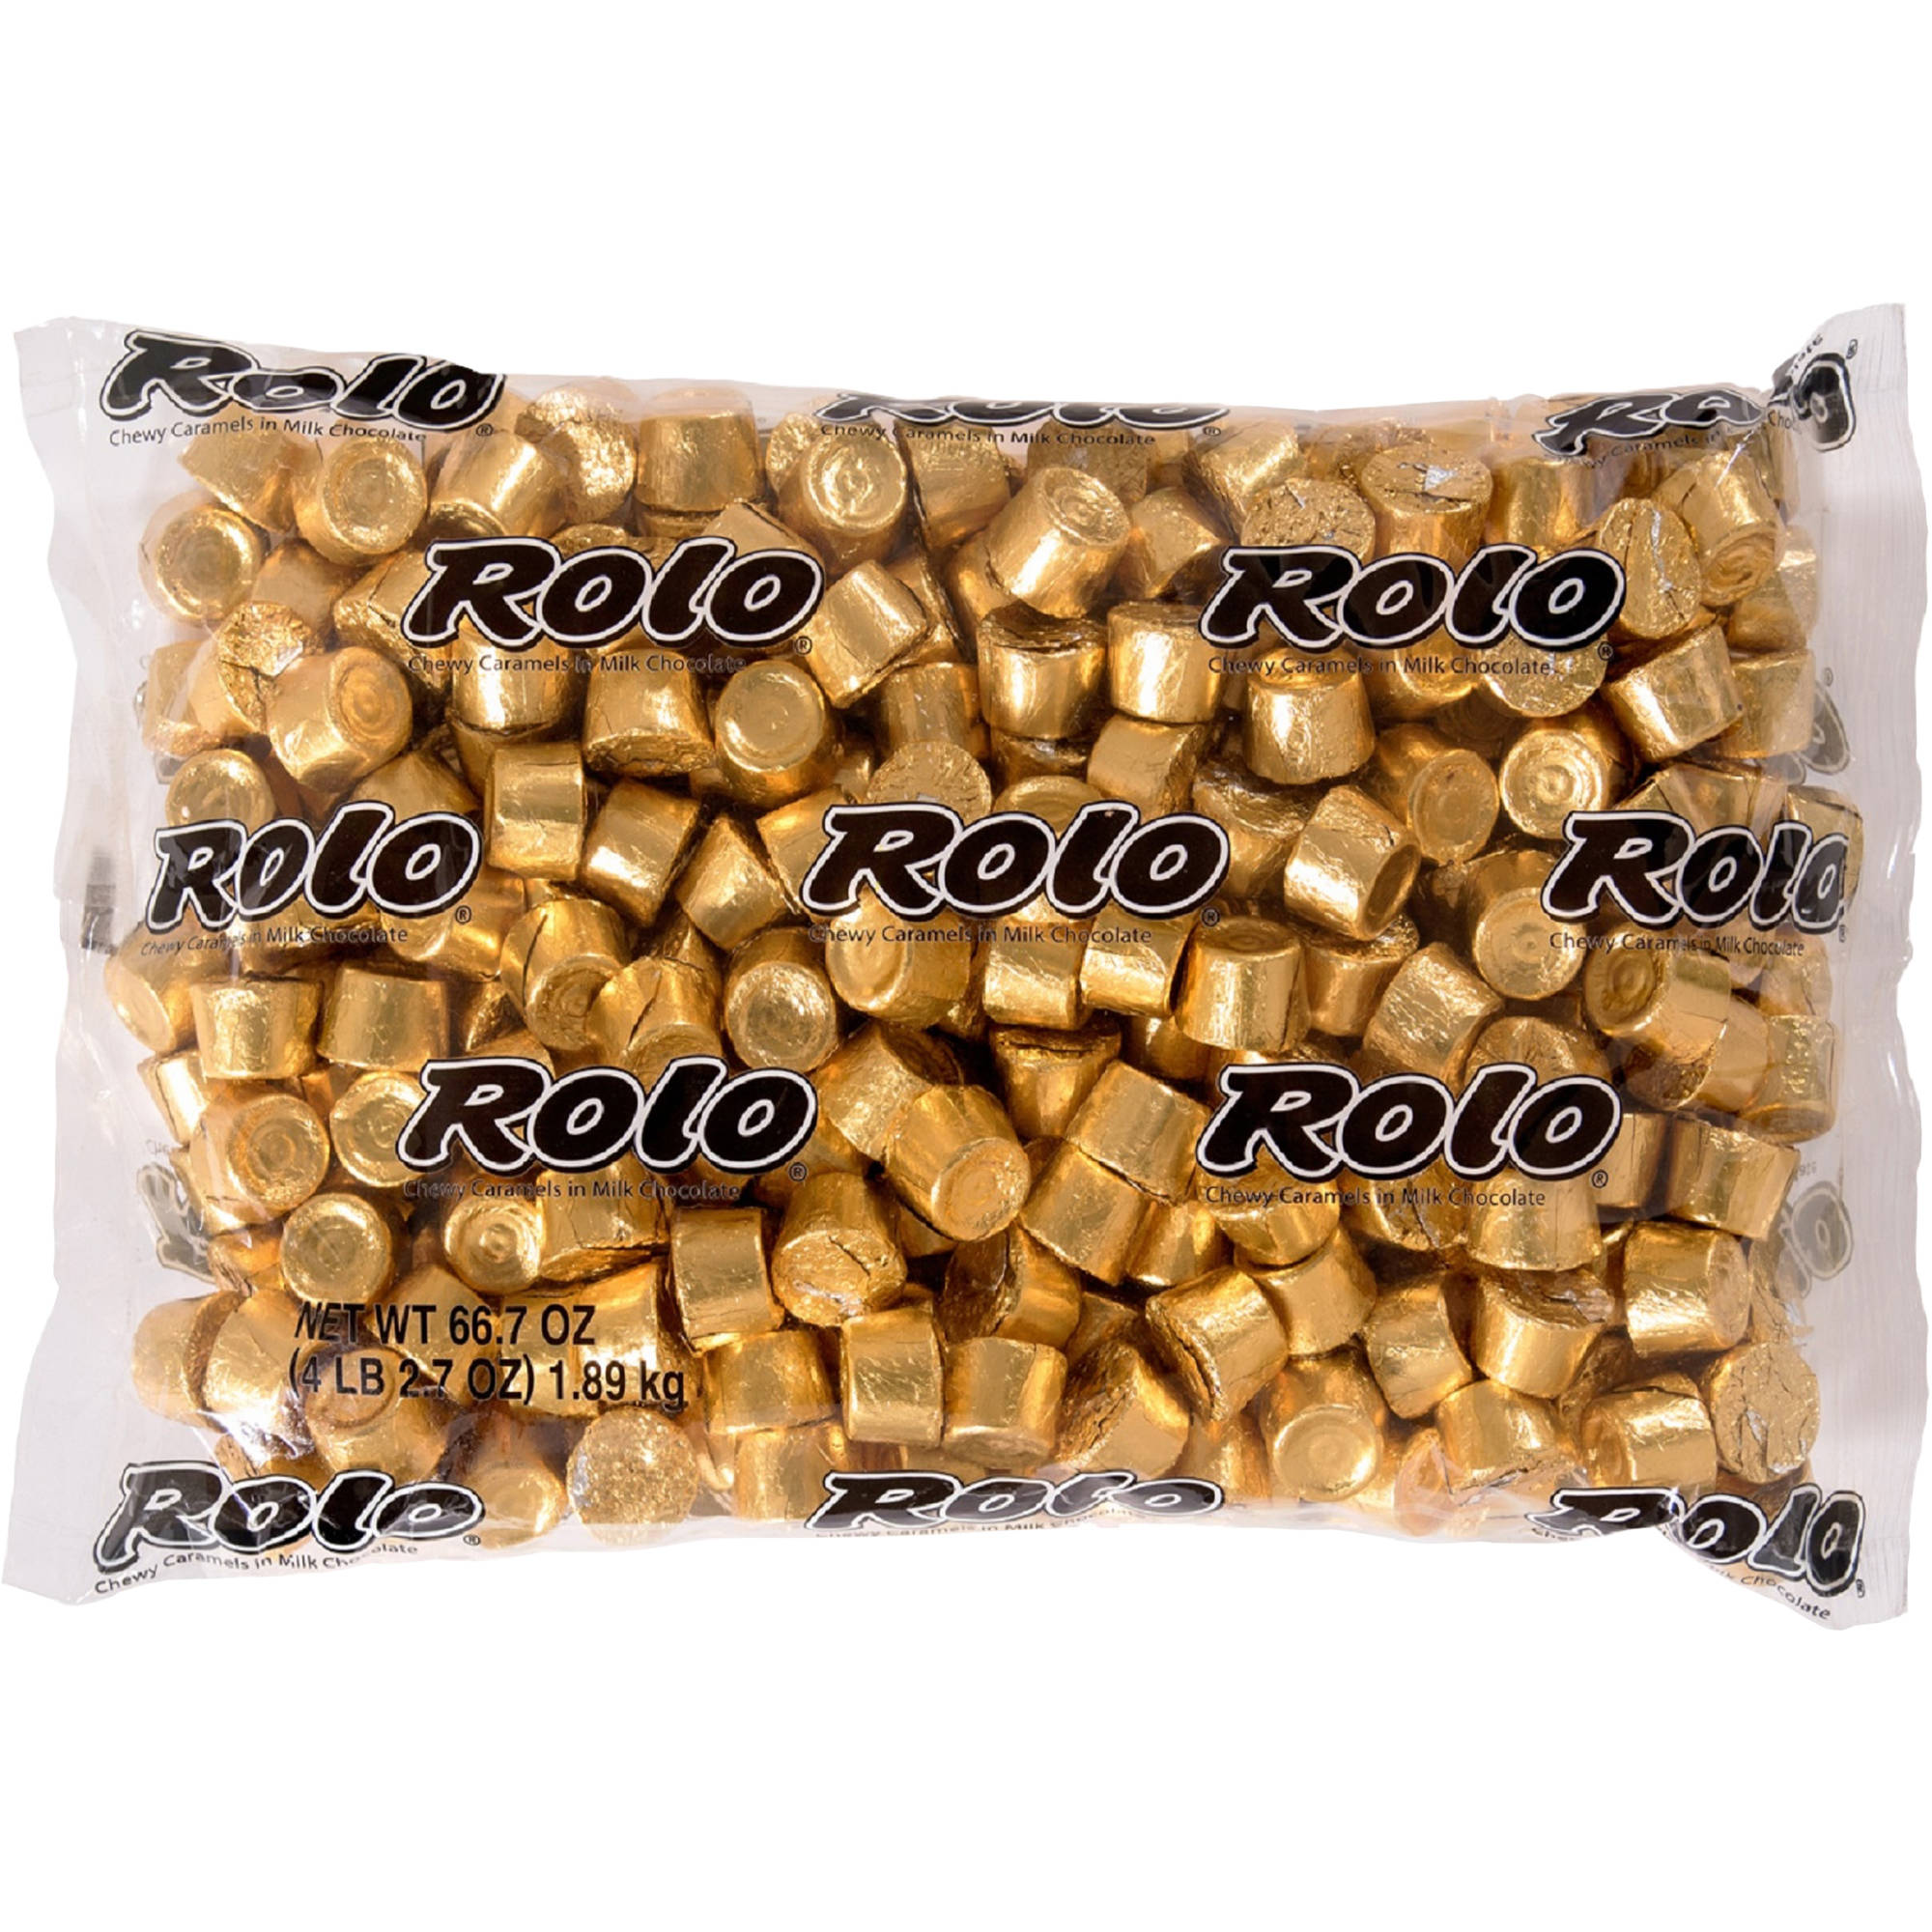 Rolo Chewy Caramels in Milk Chocolate Candy, 4.1 lb - Online Only